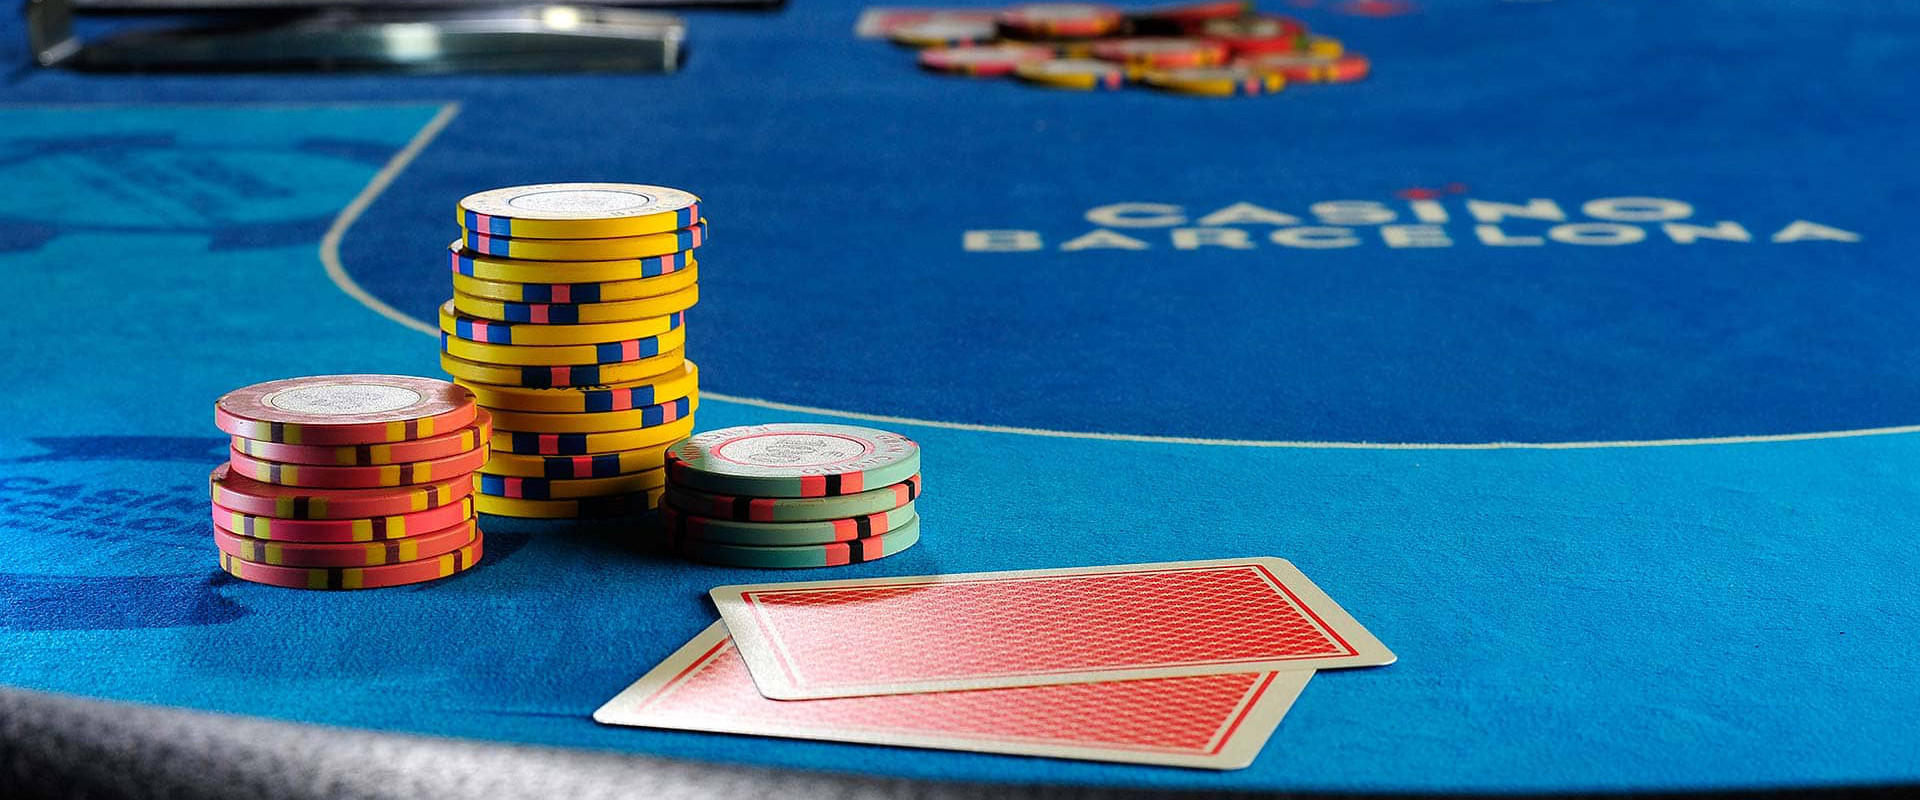 HELPFUL TIPS THAT ENSURES SAFETY AND ENTERTAINMENT WHILE PLAYING ONLINE SLOTS